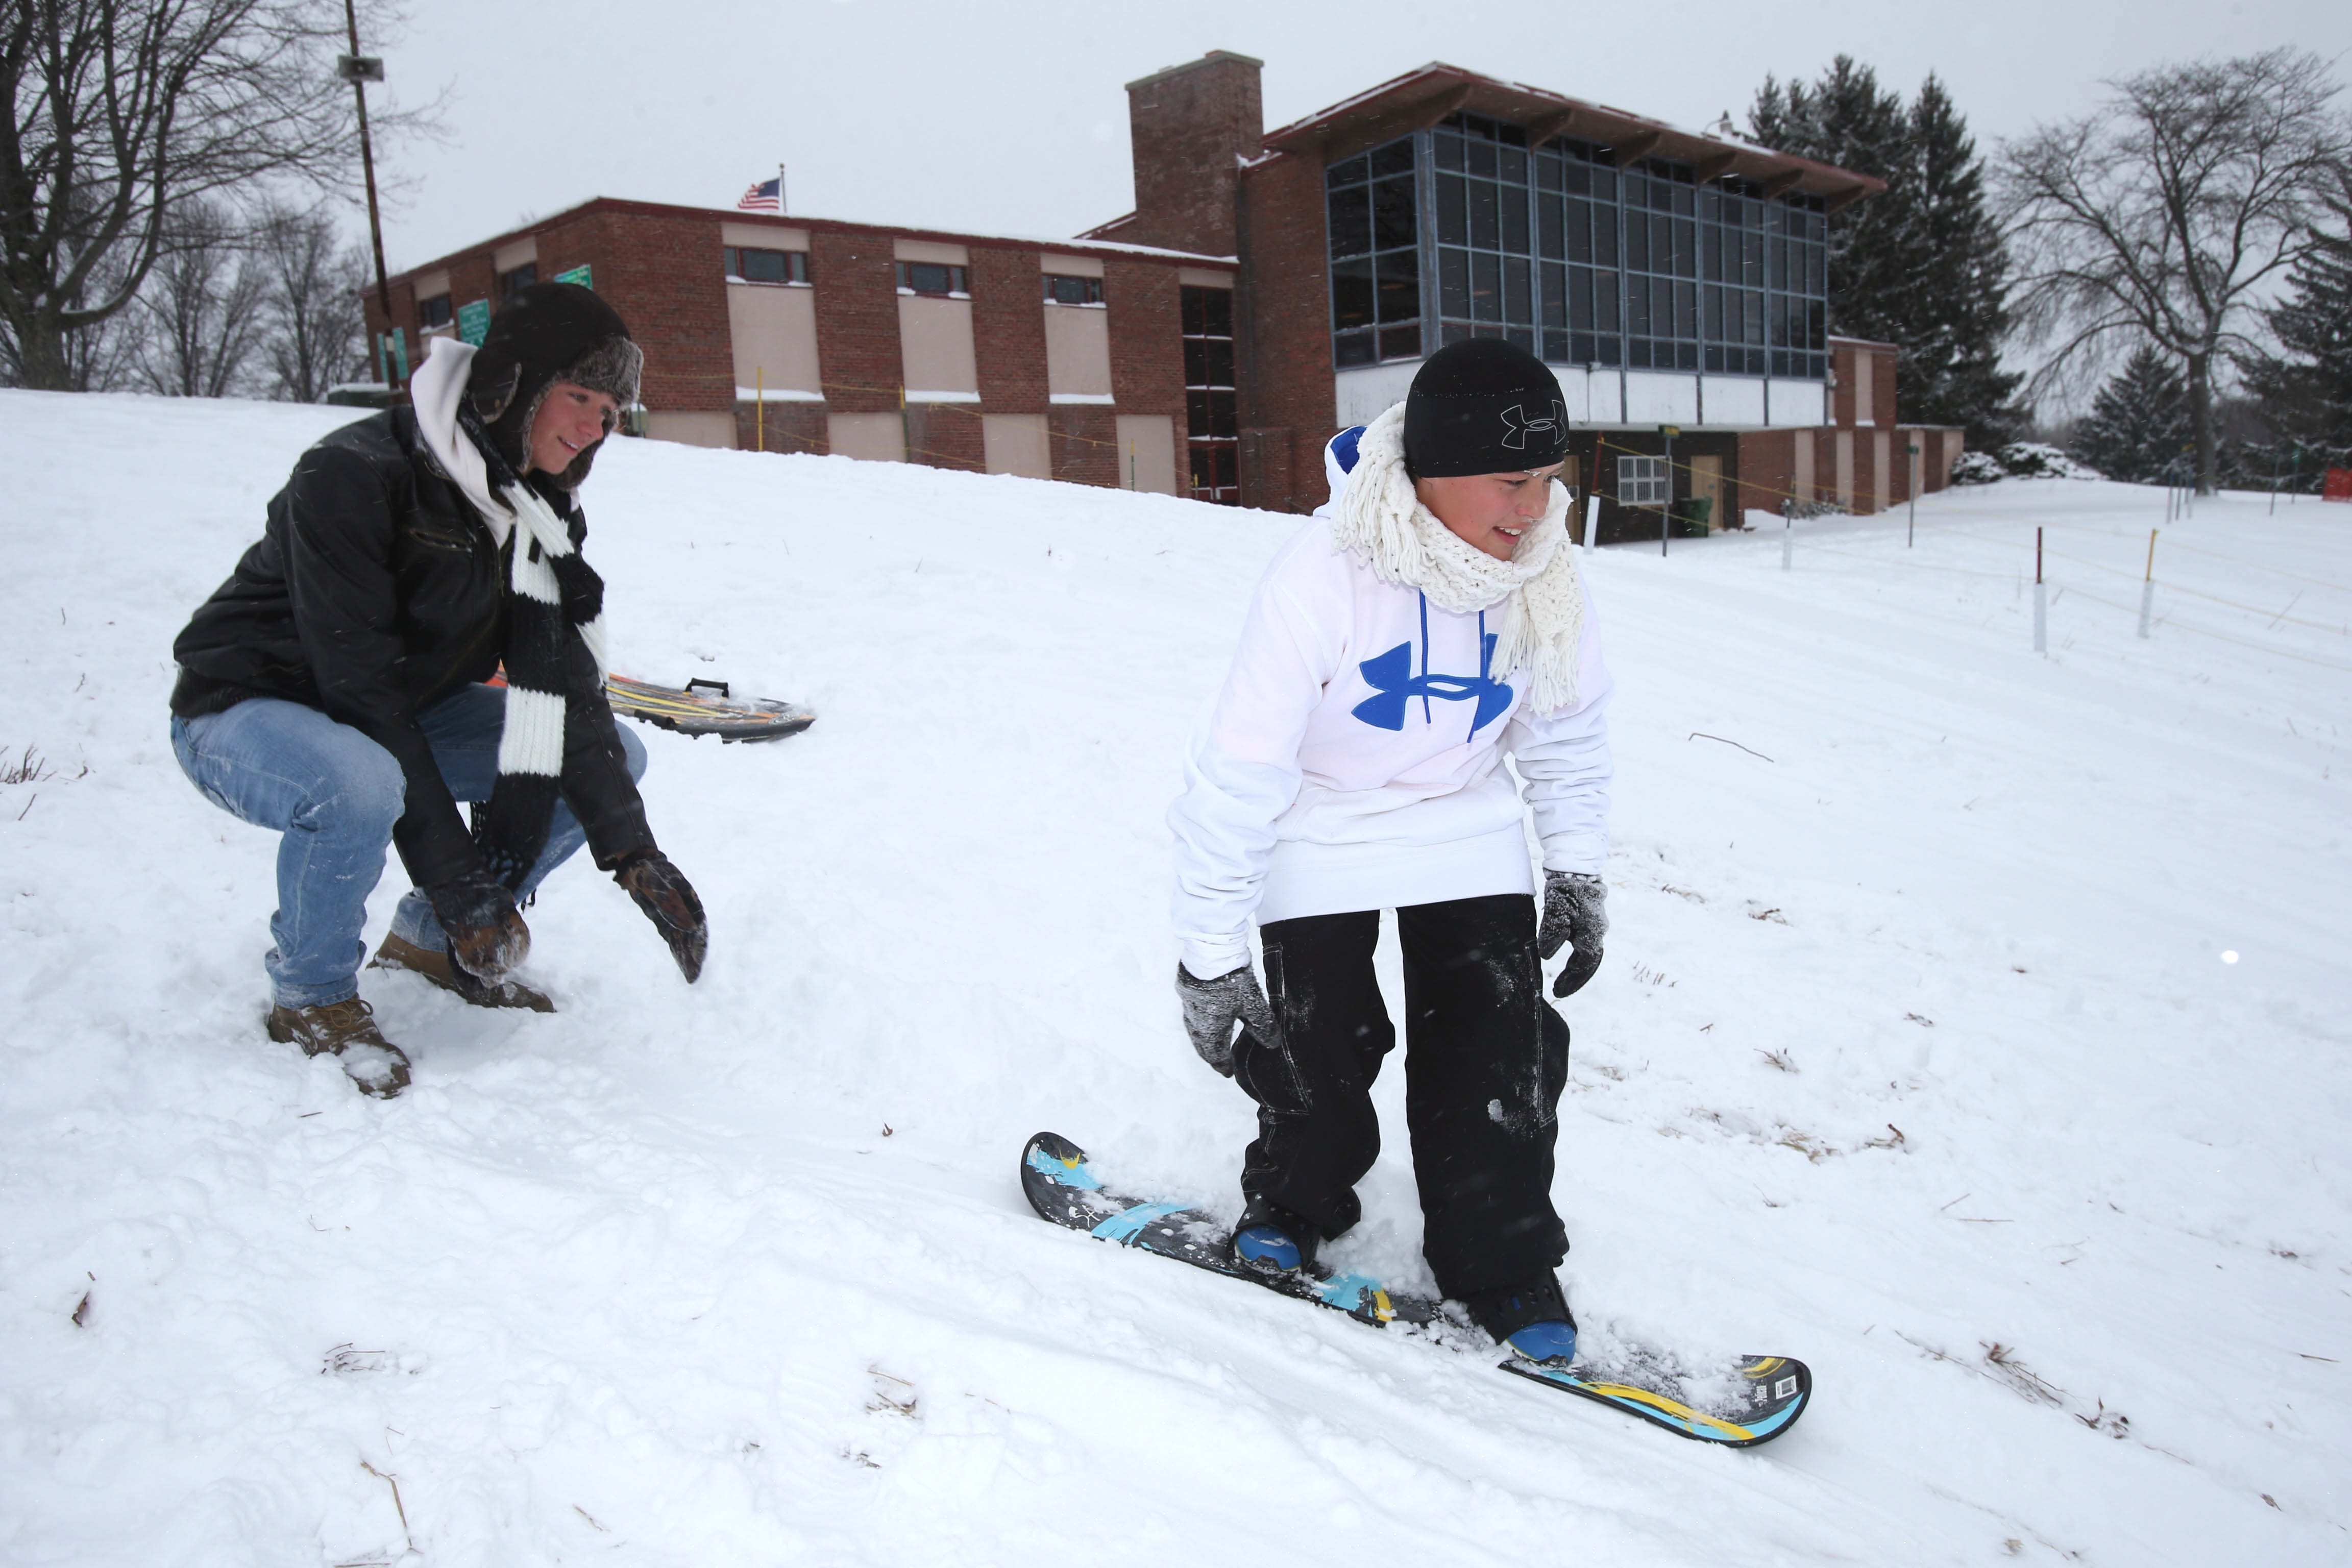 Mark Murr, 16, of Cheektowaga, pushes cousin Irvin Murr, 11, of Orlando, Fla., on his snowboard  Thursday at Elma Meadows County Park. County parks provide free winter activities.